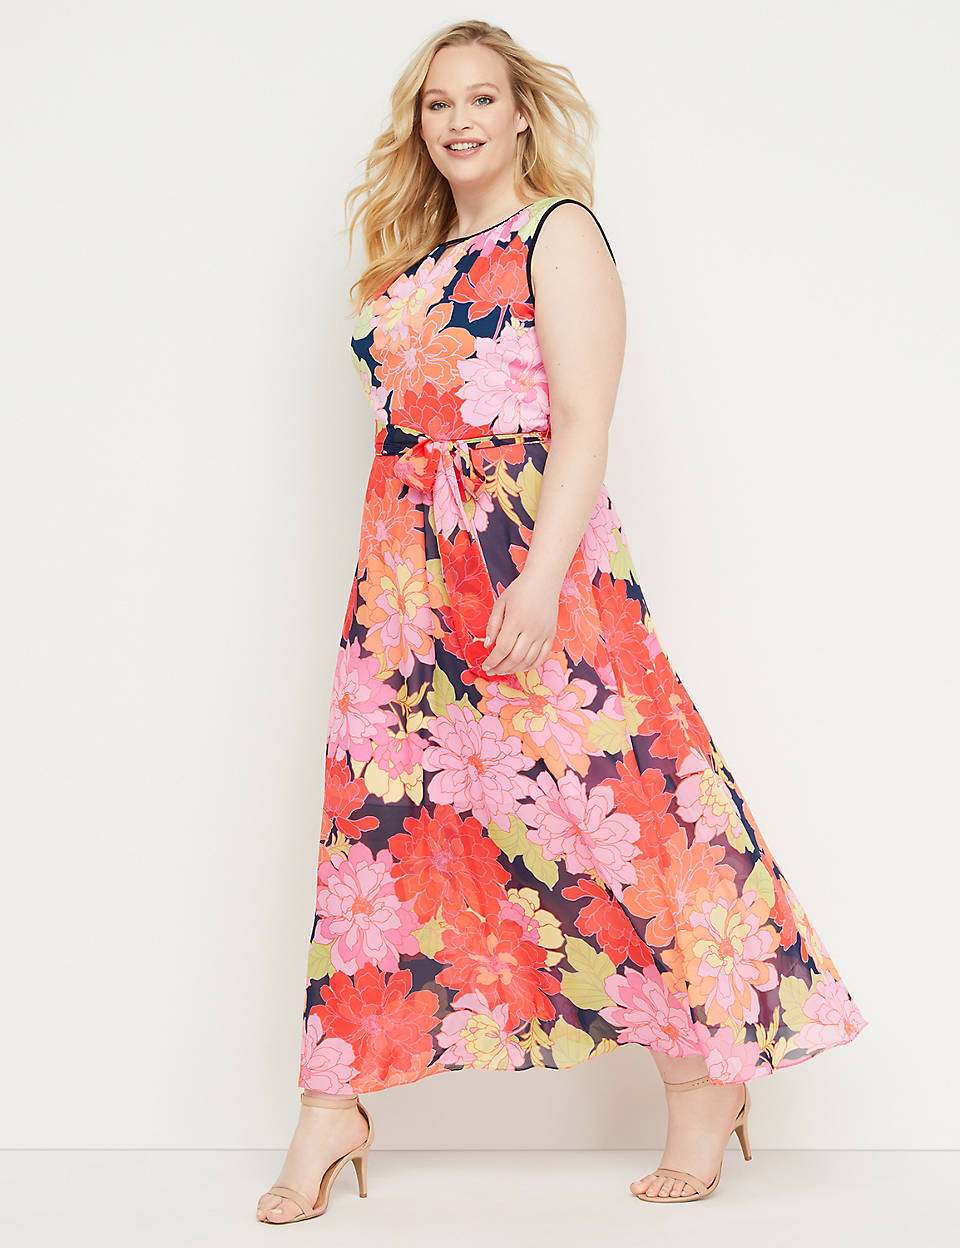 2a92b96c1ee5 Floral Chiffon Fit & Flare Maxi Dress | Lane Bryant